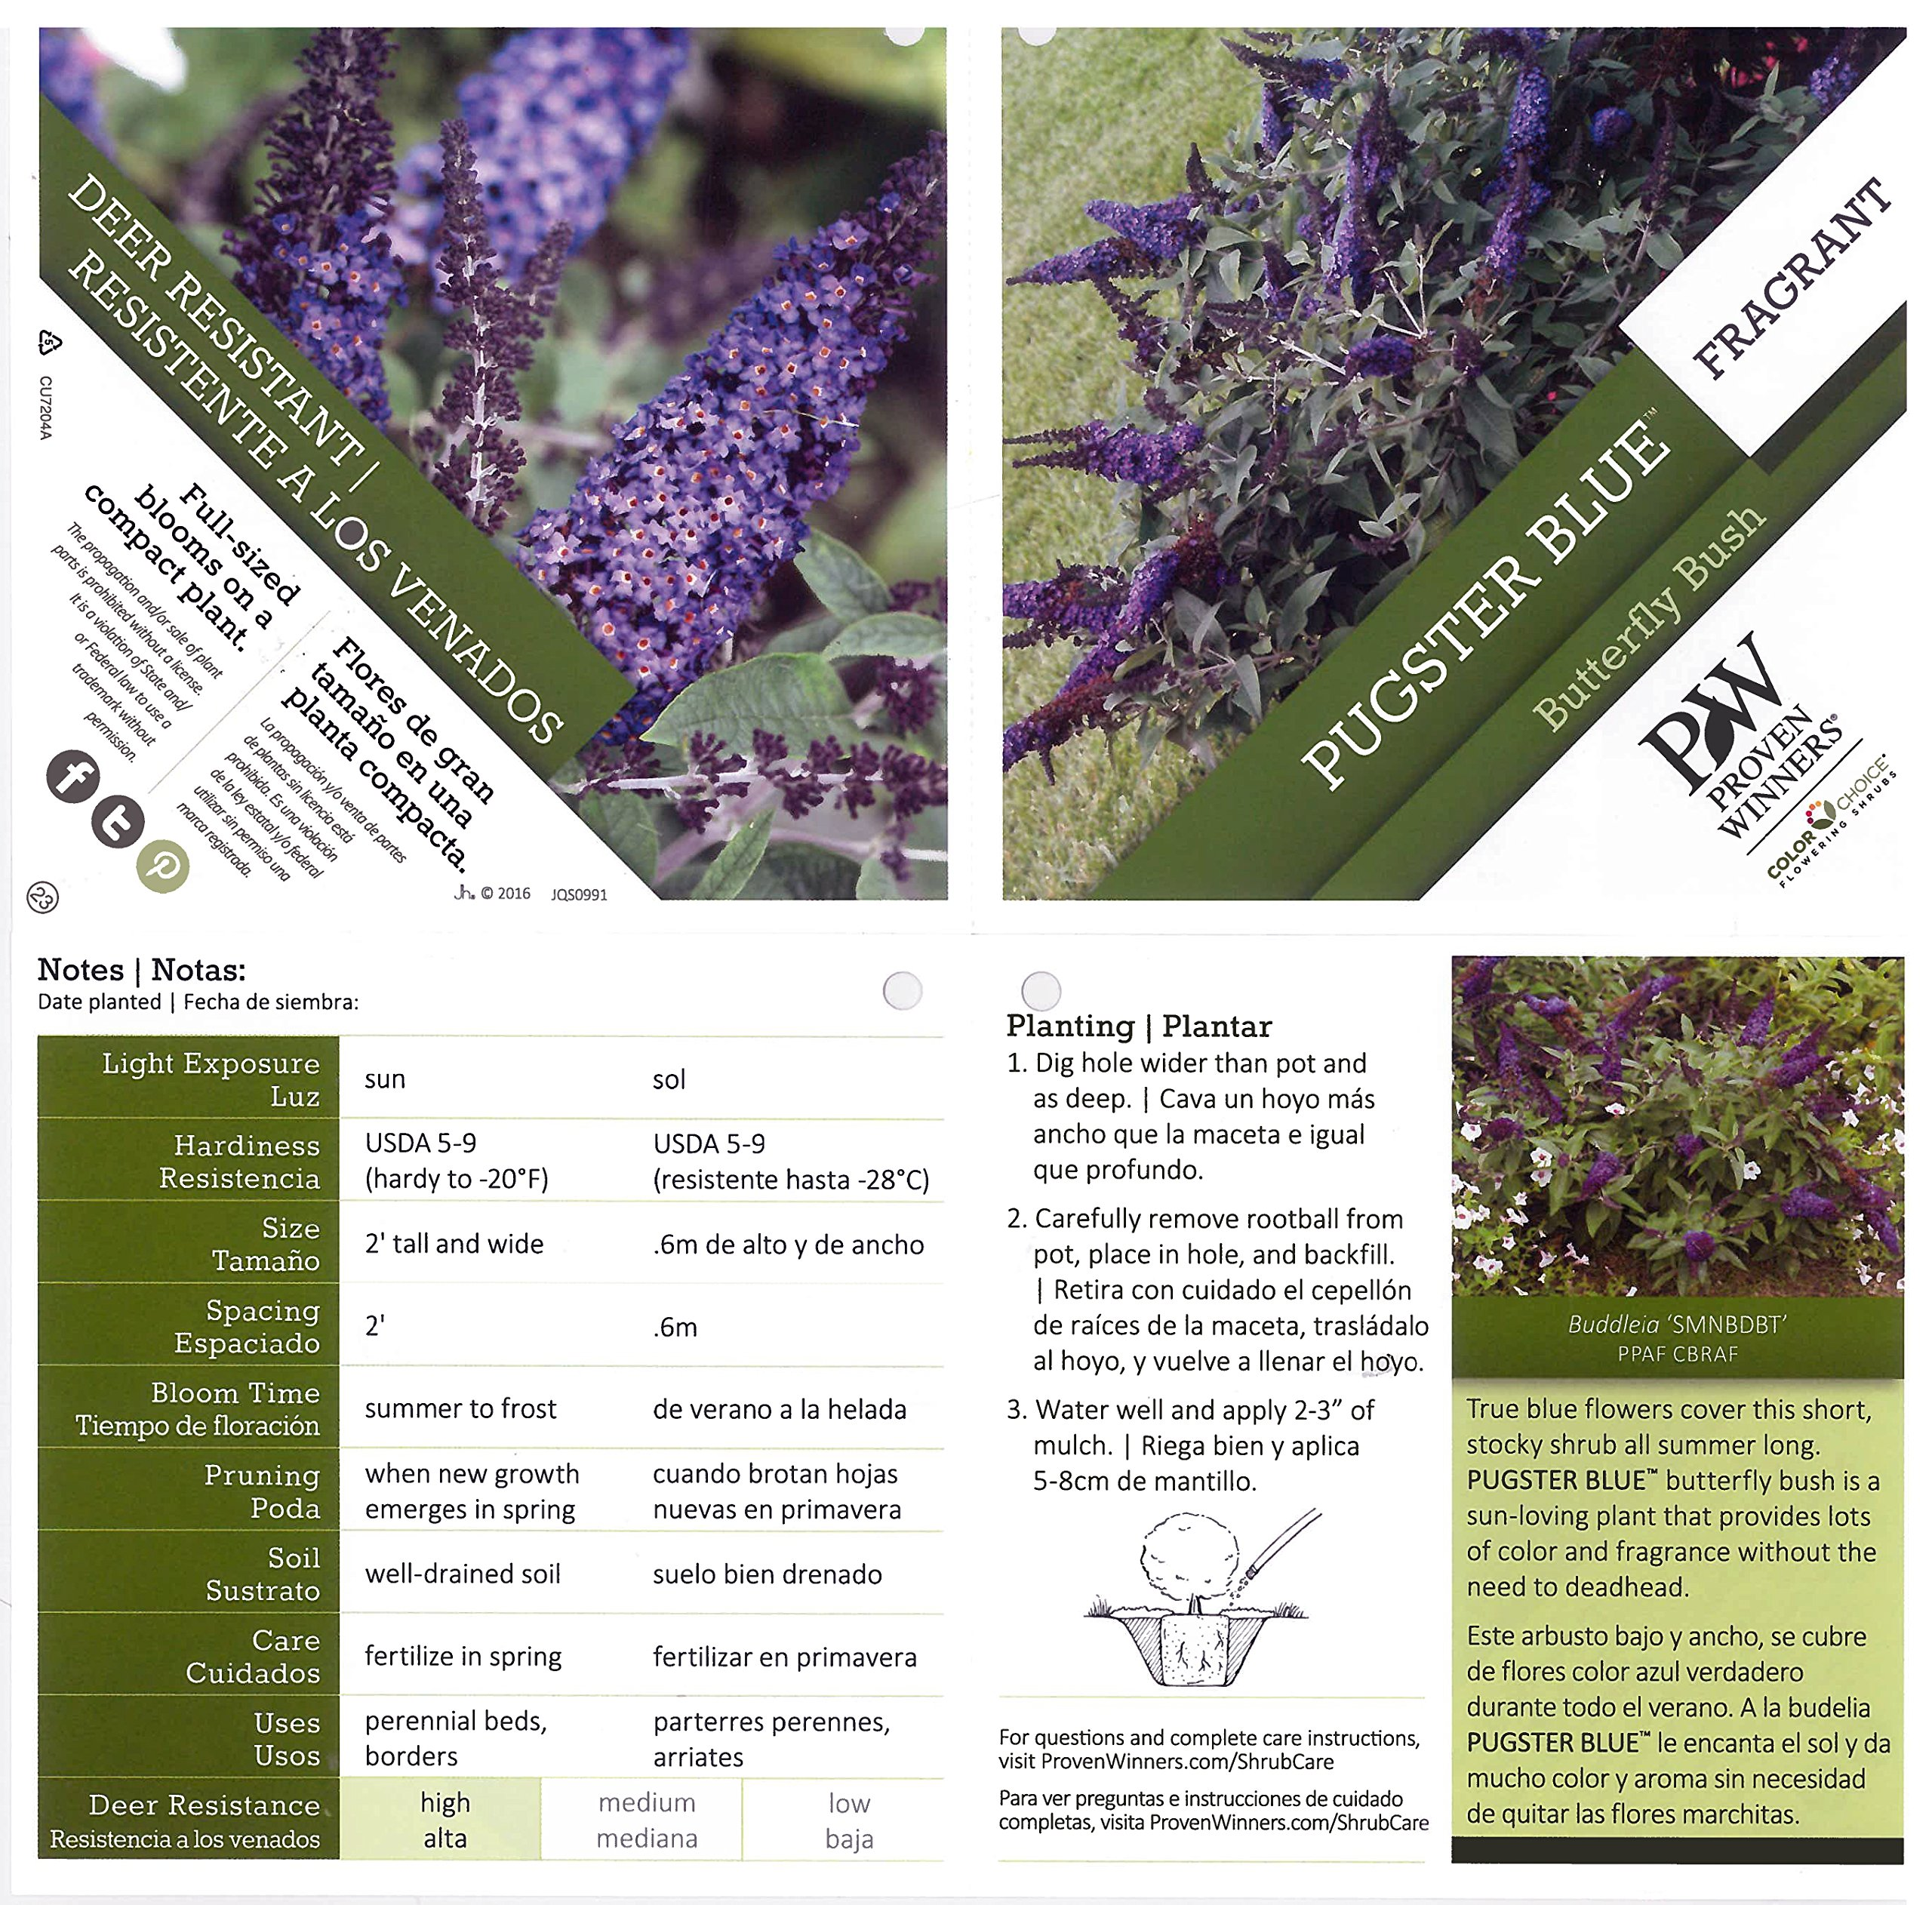 Pugster Blue Butterfly Bush (Buddleia) Live Shrub, Blue Flowers, 1 Gallon by Proven Winners (Image #3)